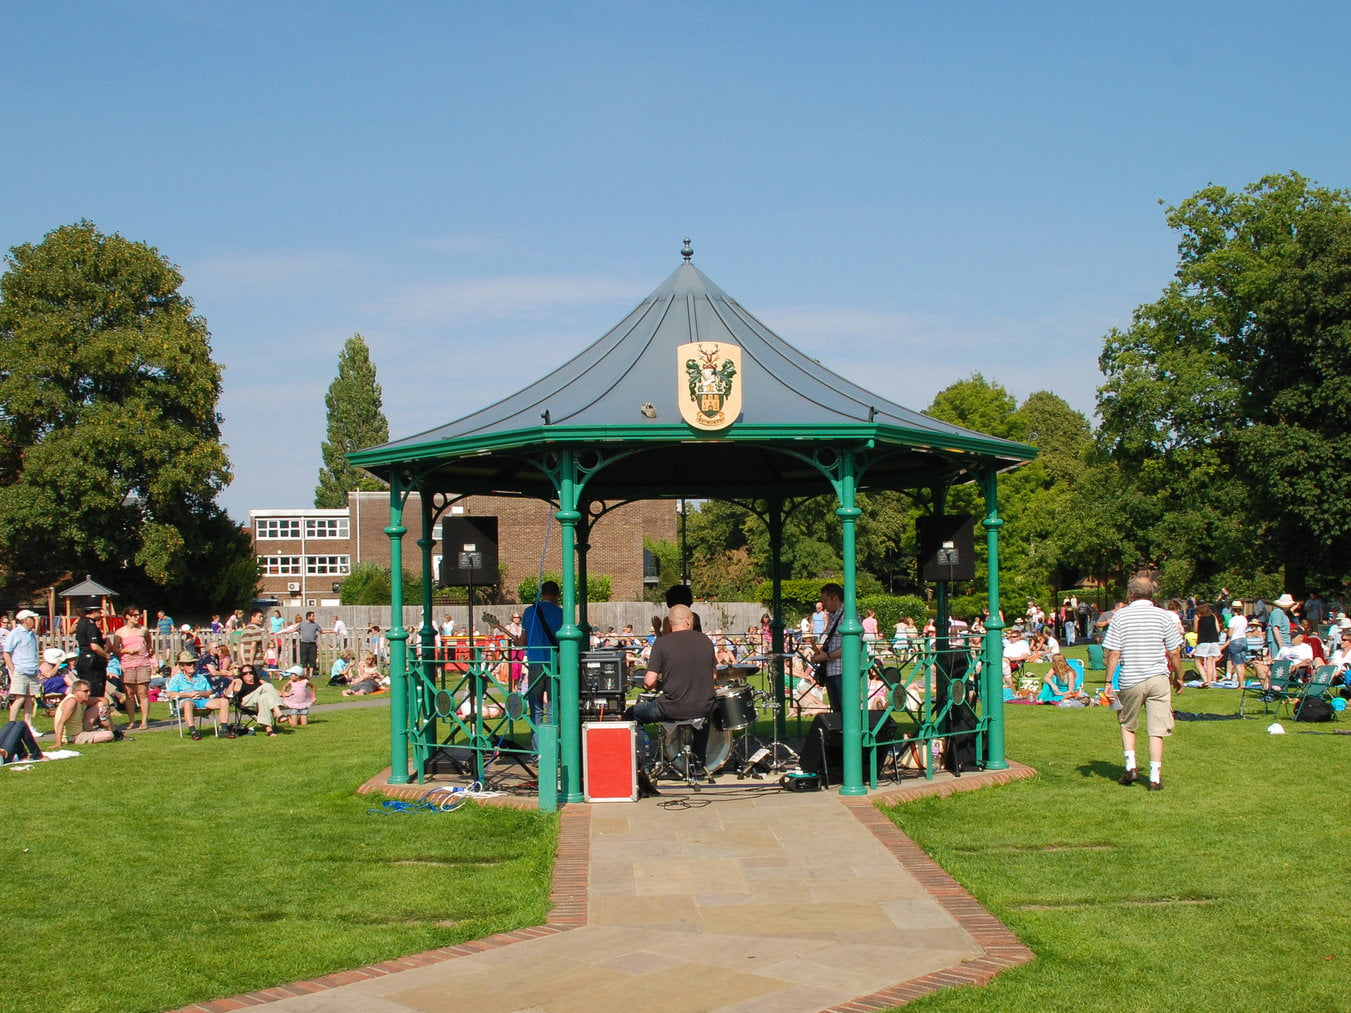 People watching a band play in a bandstand in a park.